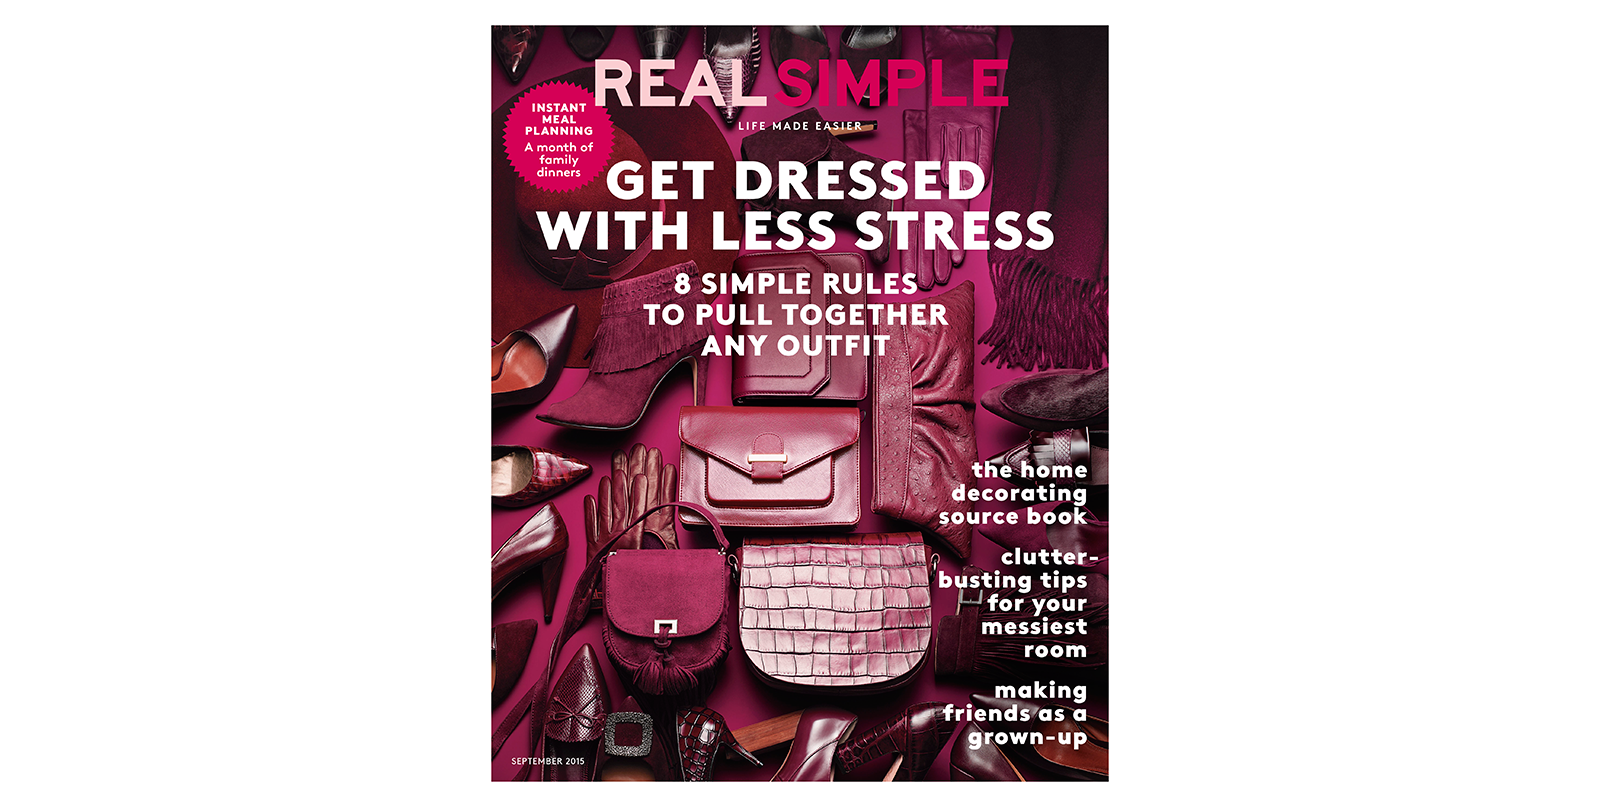 What's New on RealSimple.com